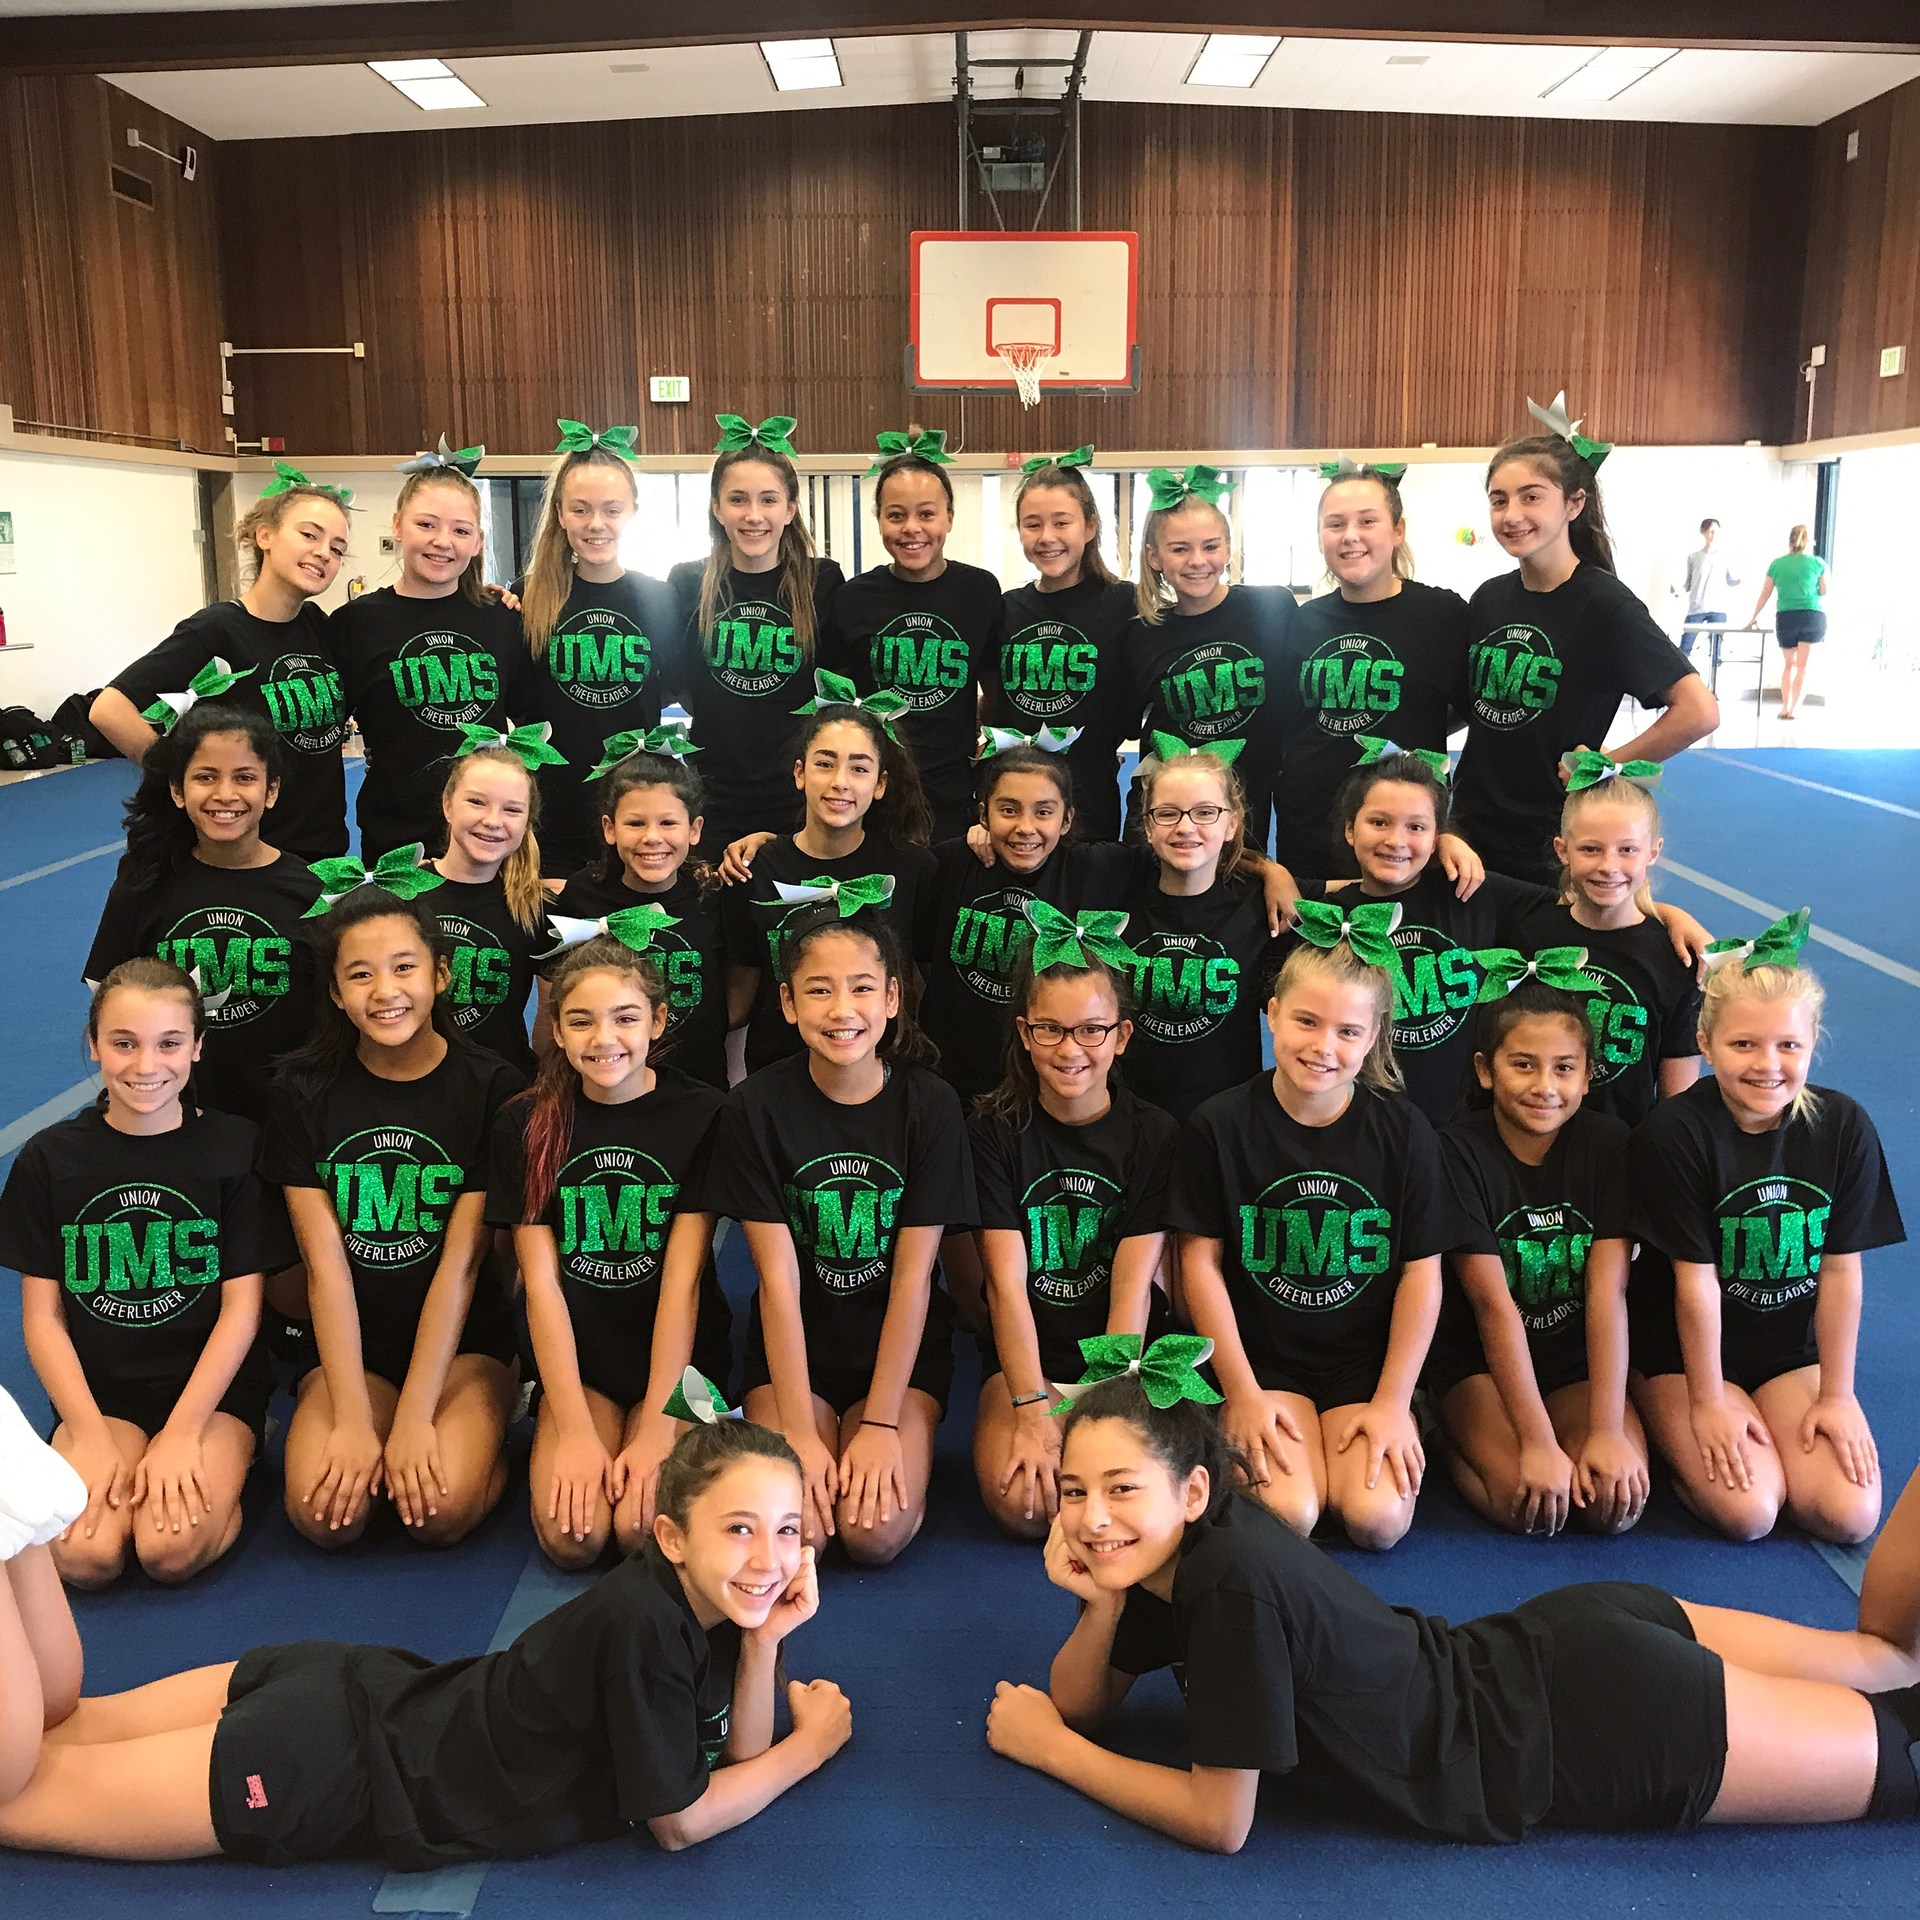 UMS Cheerleaders 2017-2018